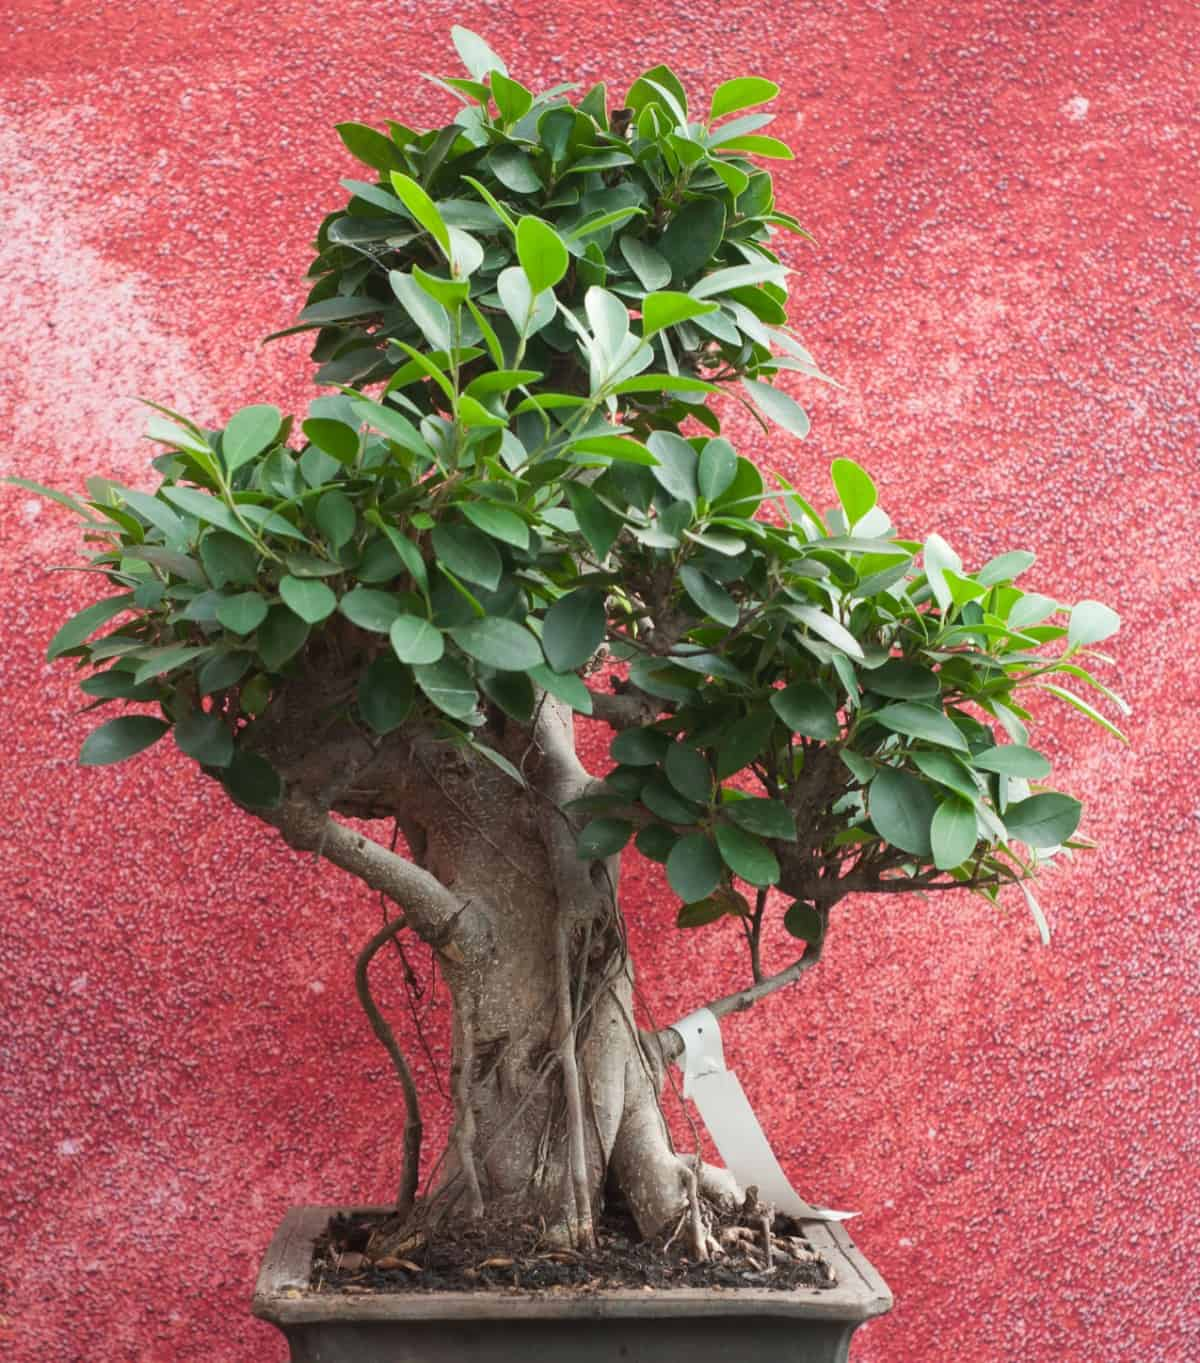 The ficus is the best bonsai for beginners.